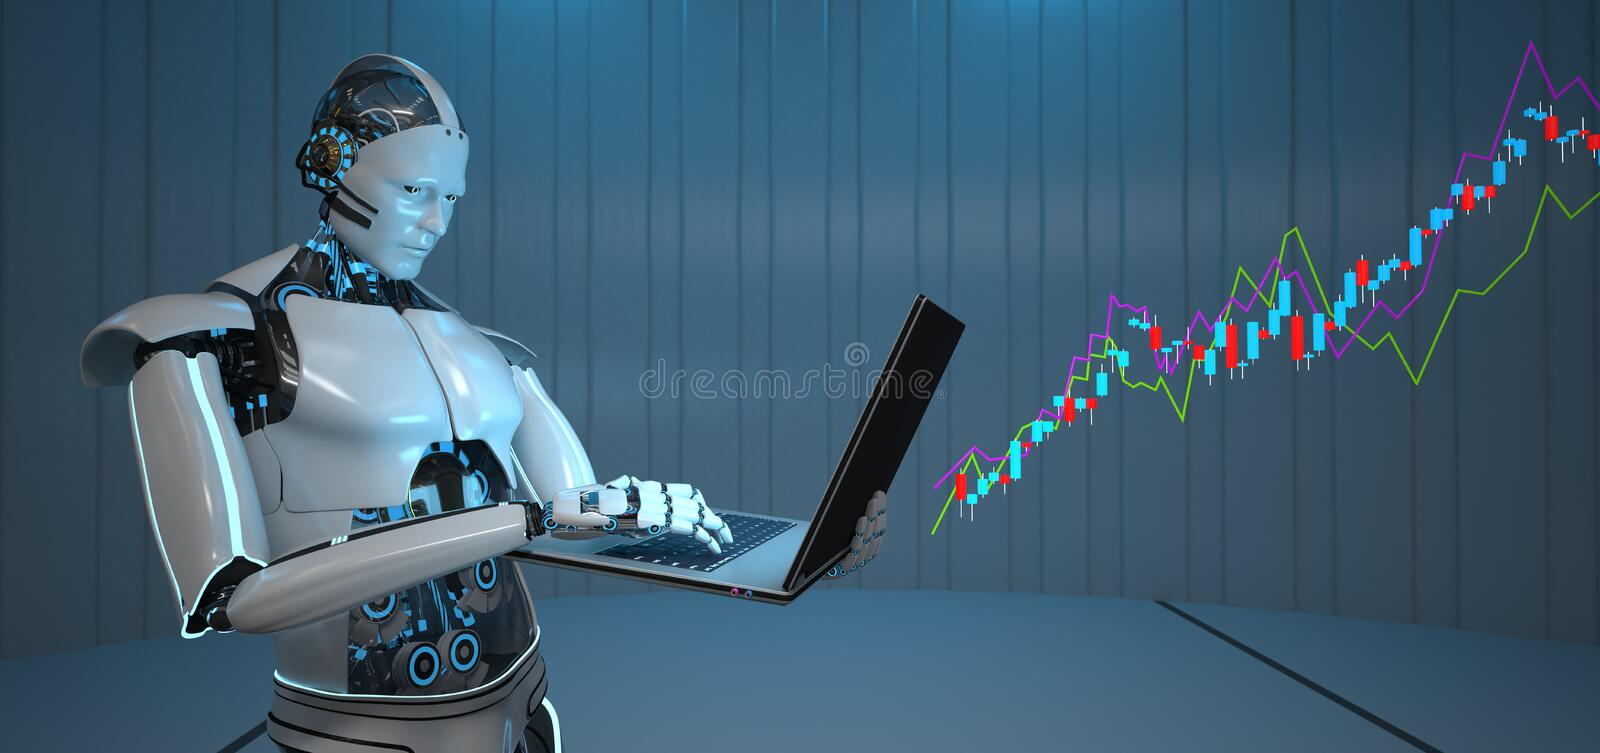 Humanoid Robot Notebook Candle Stick Chart Growth. Humanoid robot with a notebook and a growing candle stick chart stock illustration